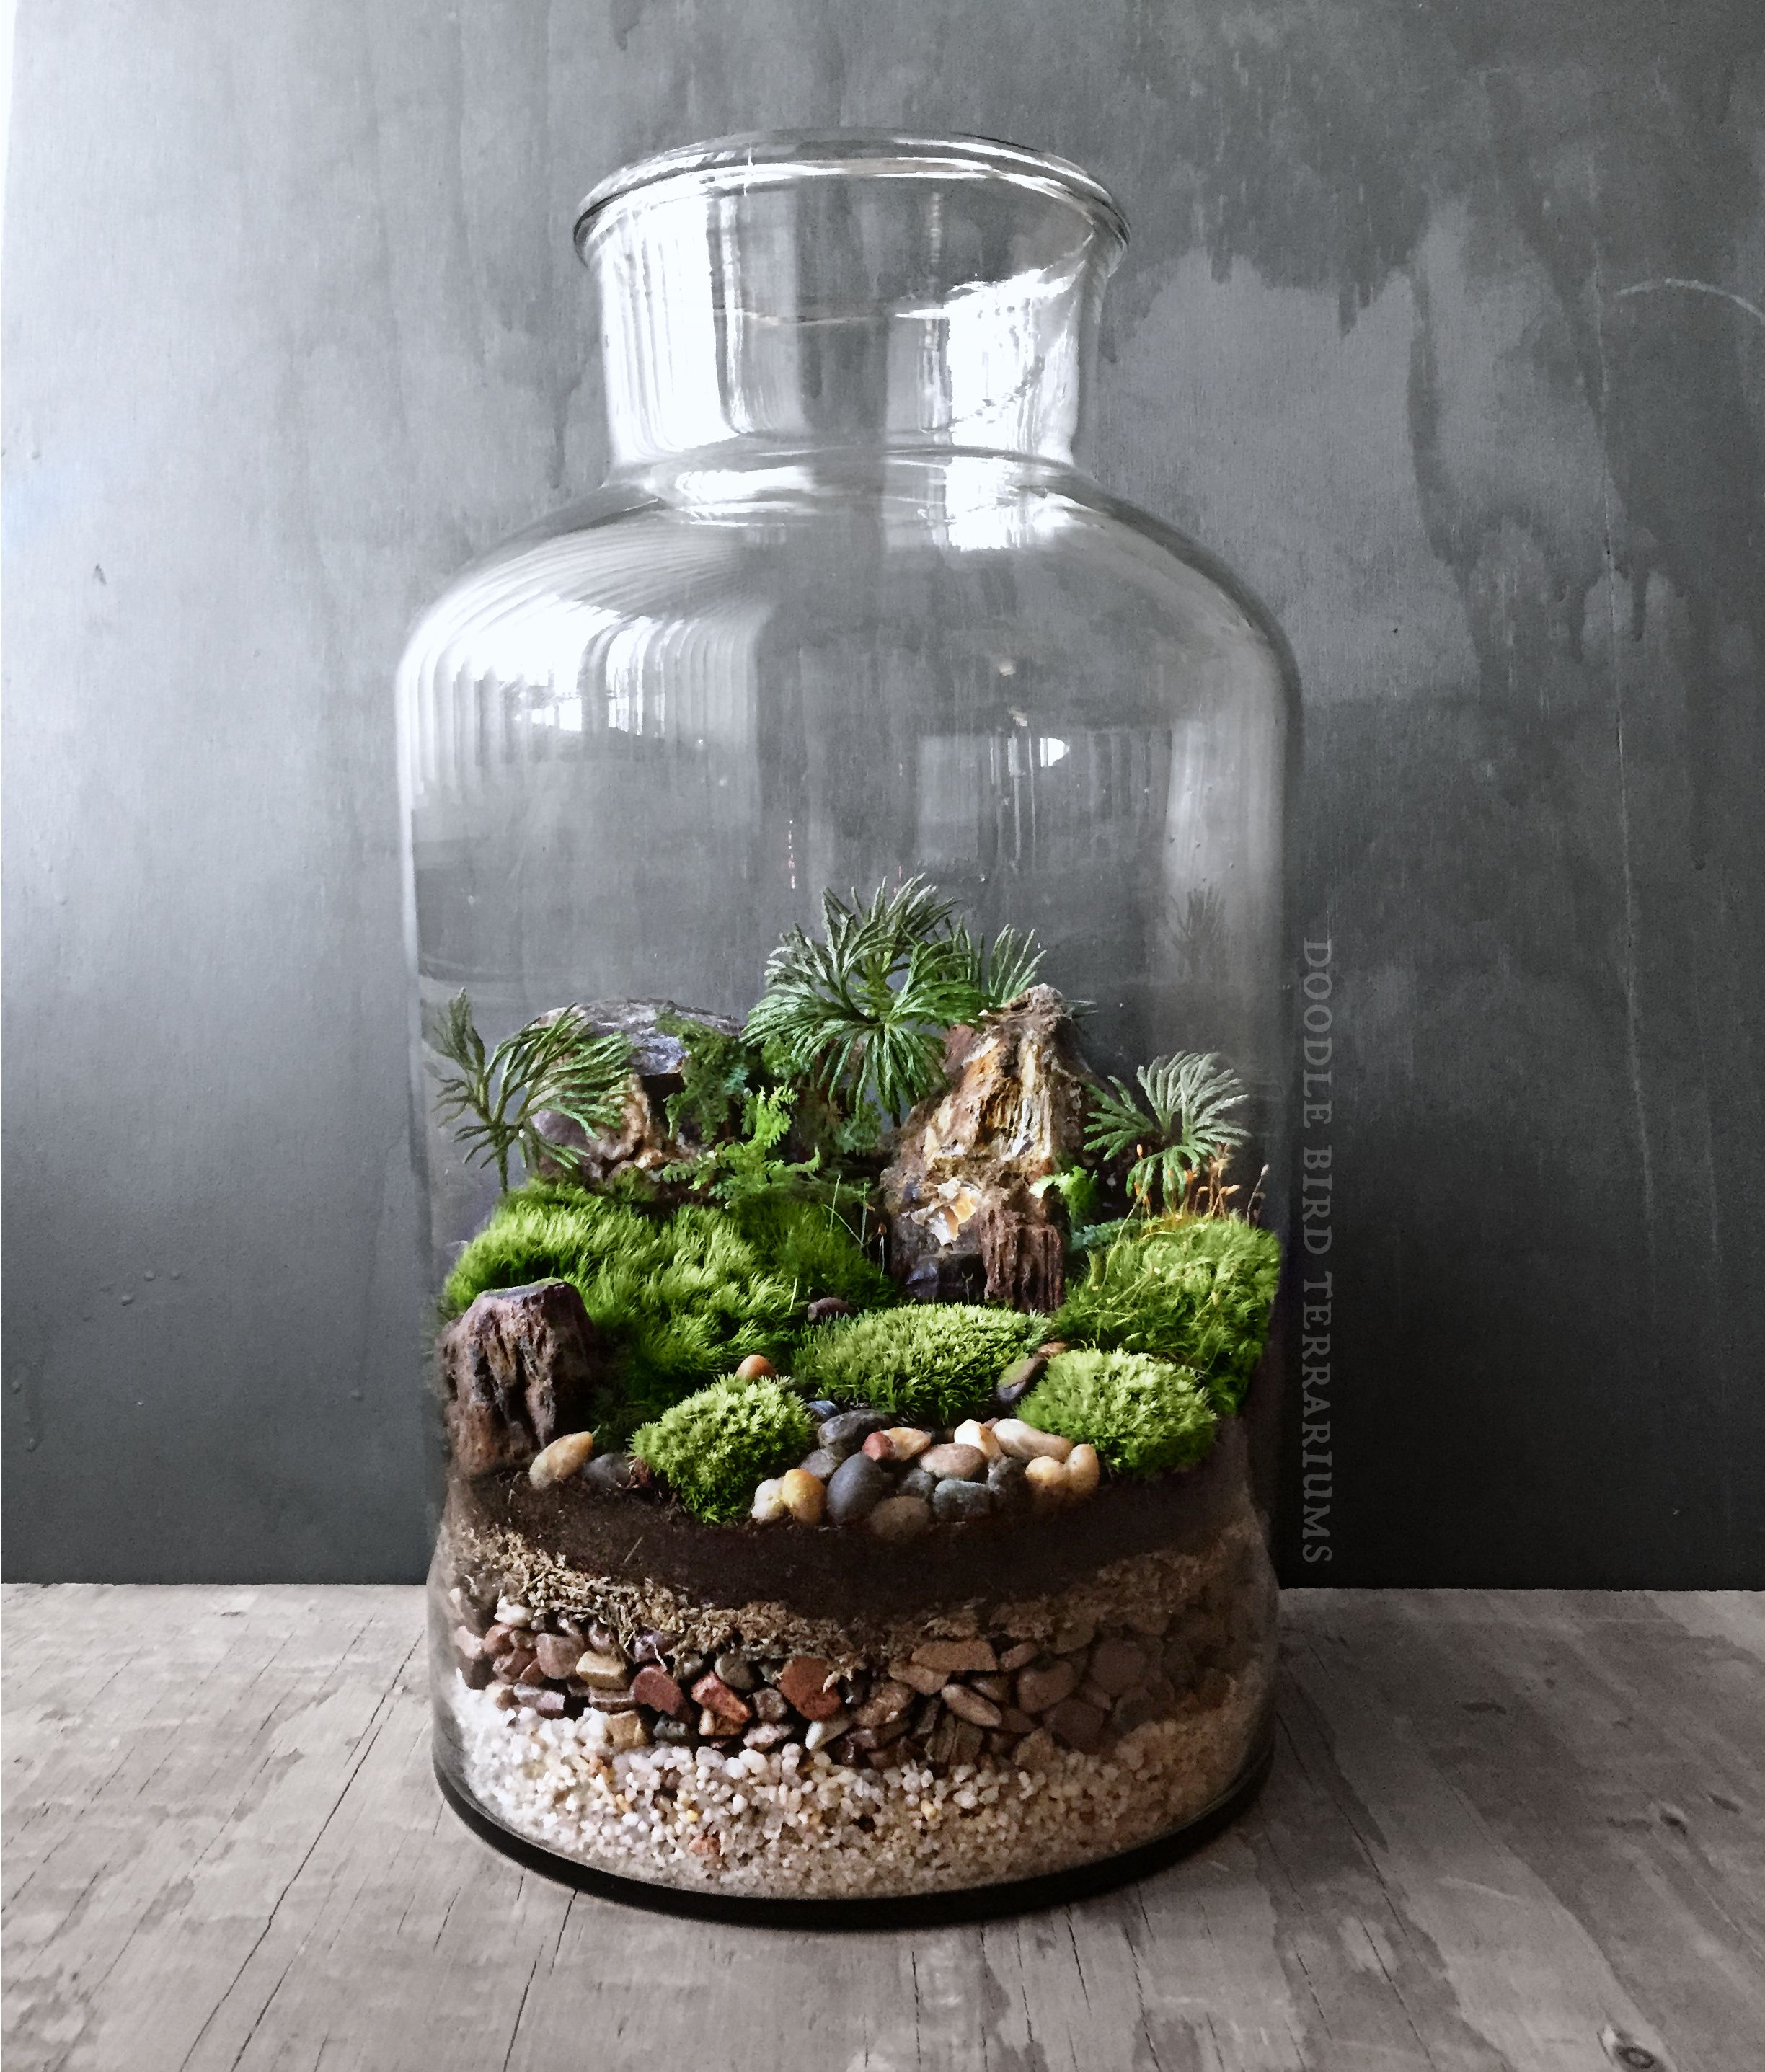 un vrai paysage miniature pour cet imposant terrarium cr dit photo doodle bird terrariums. Black Bedroom Furniture Sets. Home Design Ideas